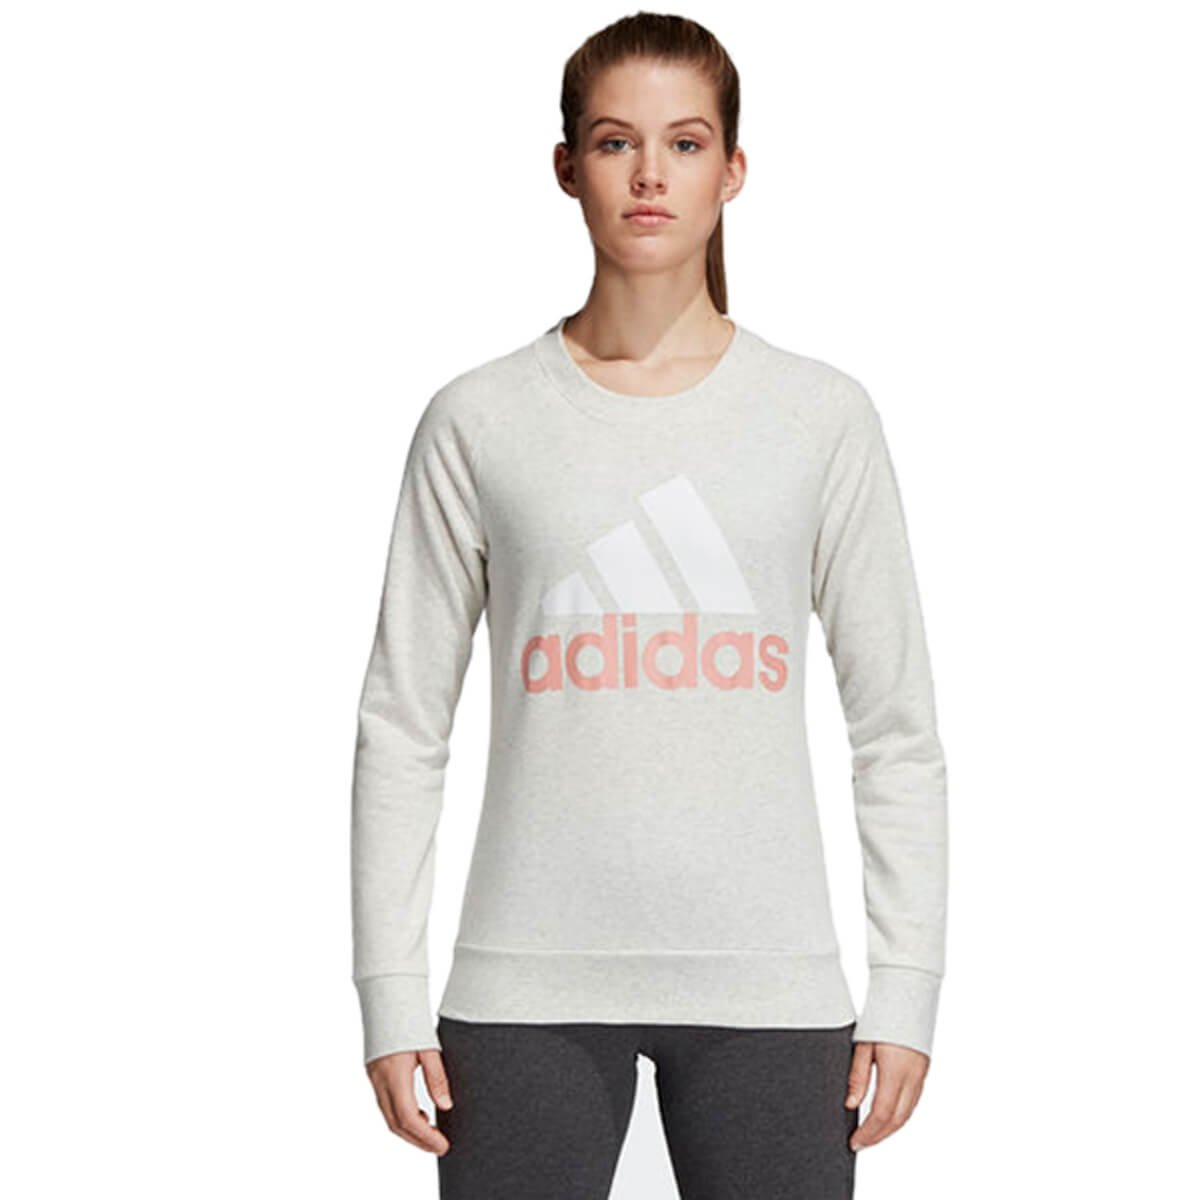 ed5de7a7bf2 Bizz Store - Moletom Feminino Adidas Essentials Linear Sweat